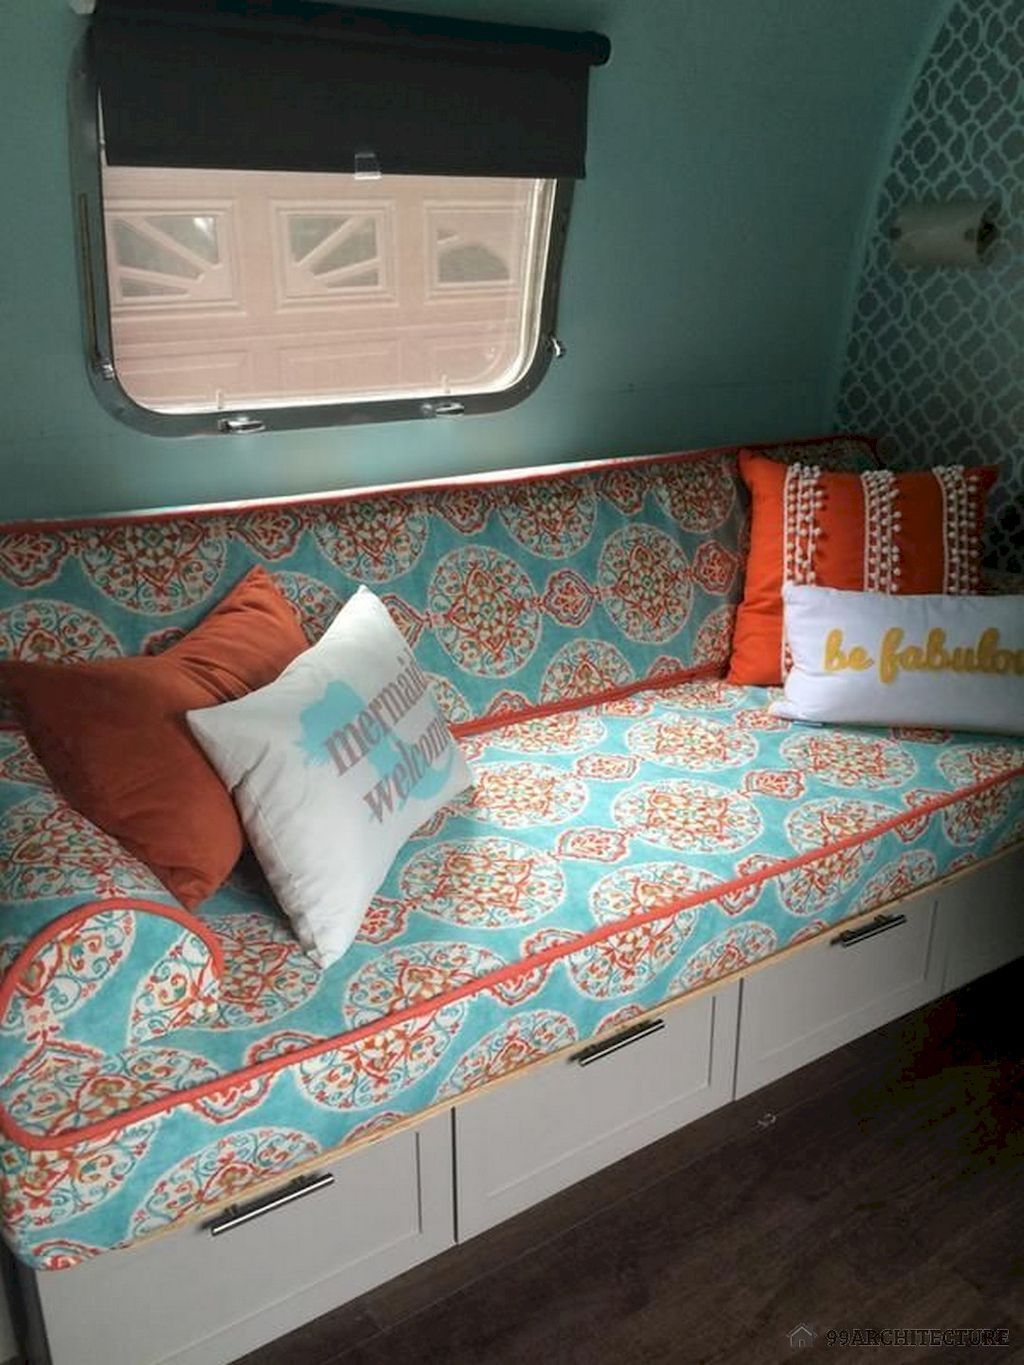 Pin By Besideroom On Living Room Ideas: Pin By BesideRoom On RV And Campers